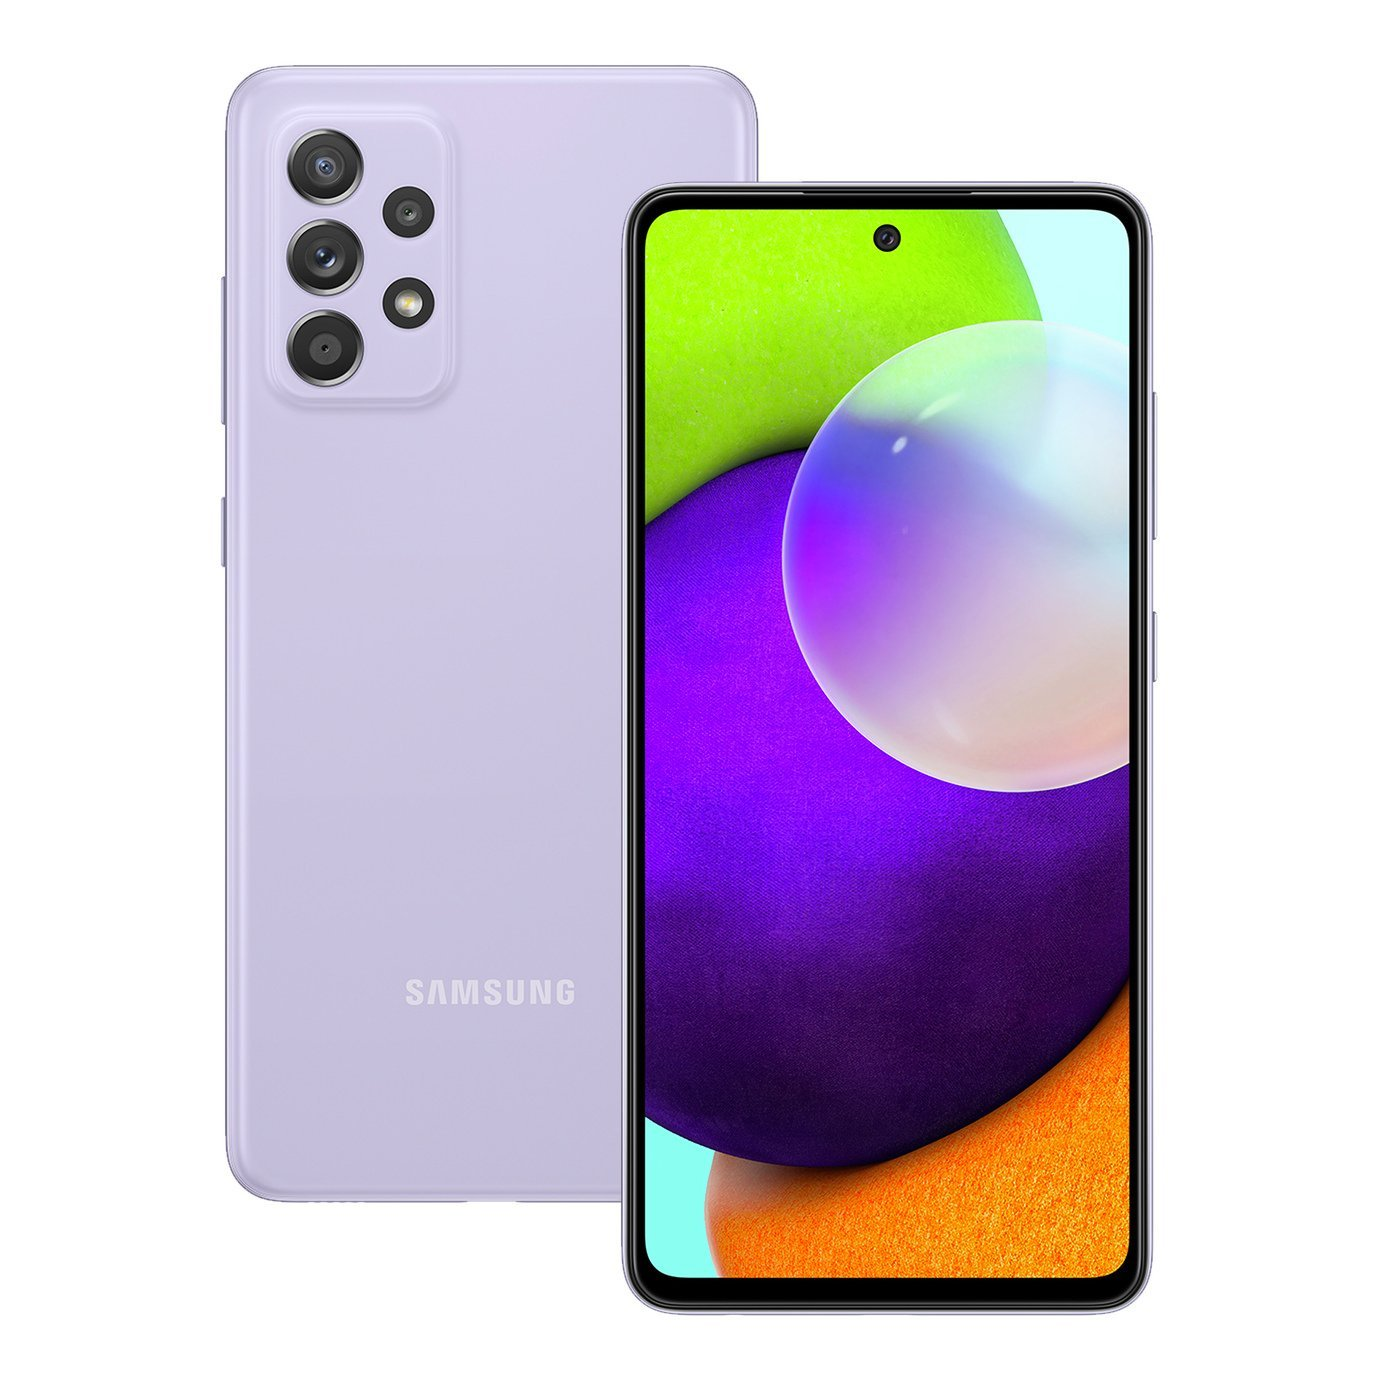 Samsung Galaxy A52 and Galaxy A52 5G European prices leaked with a price  cut compared to the Galaxy A51 - NotebookCheck.net News